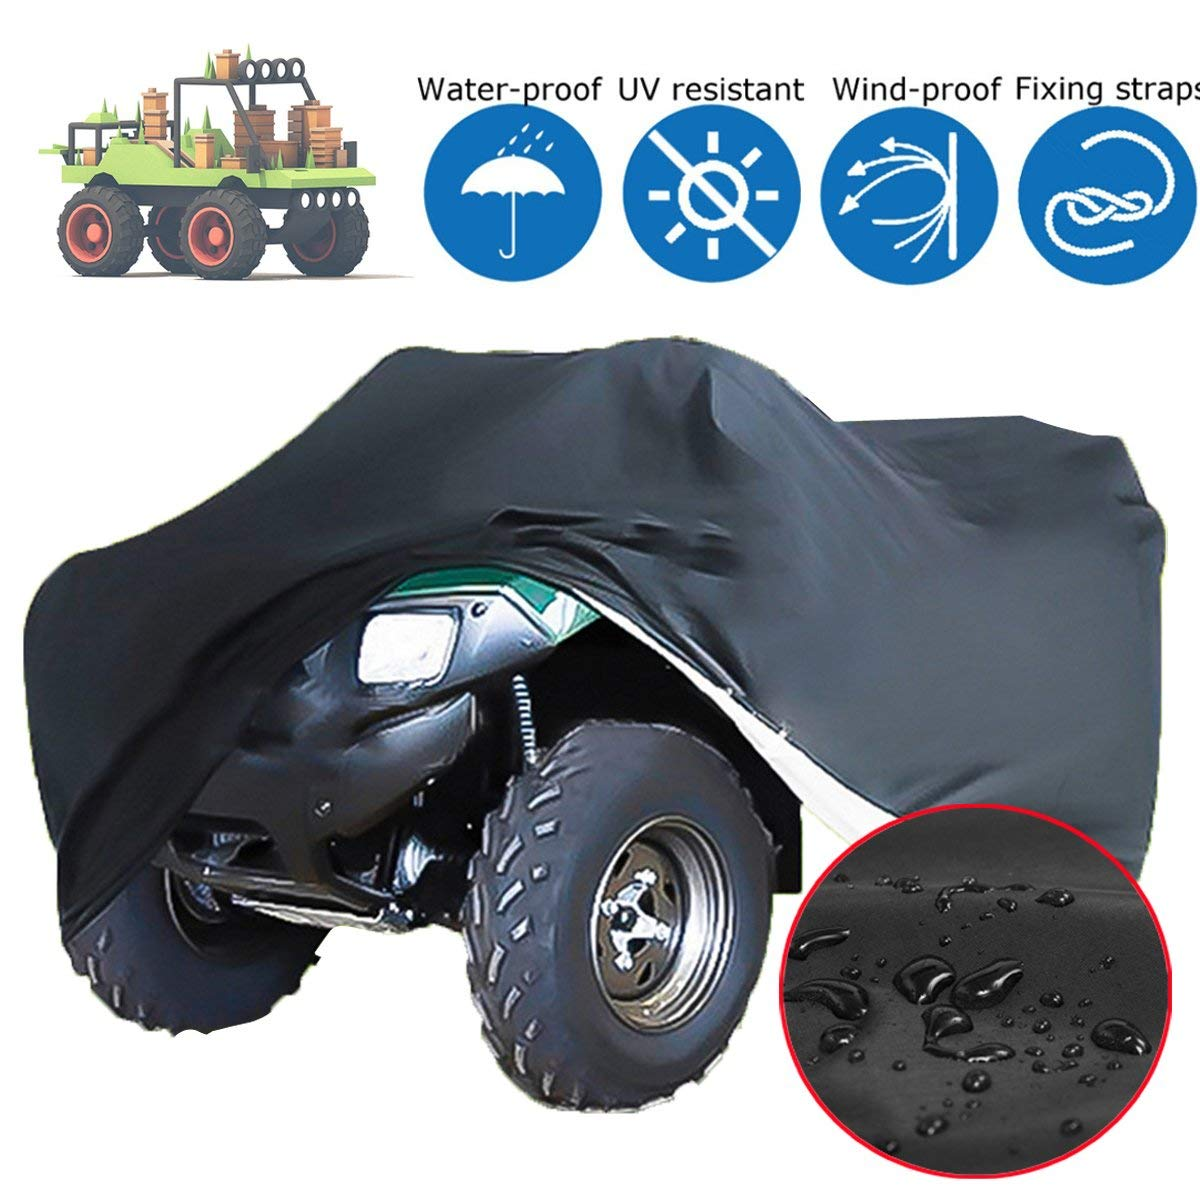 Essort Cover for Lawnmower, 170 61 117cm Waterproof Heavy-Duty Lawn Tractor Cover Universal Protection Hood Garage for Most Lawn Mowers with Storage Bag, Black Black 170 61 117cm